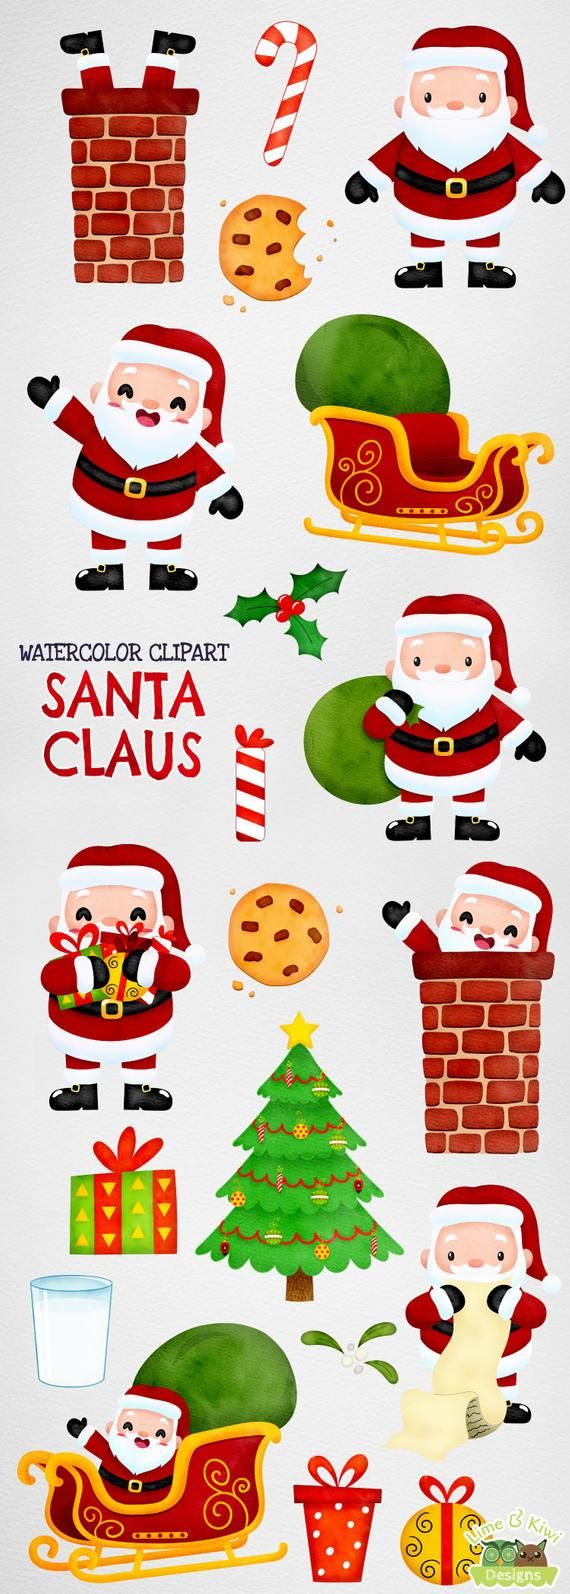 hight resolution of santa claus watercolor clipart instant download vector art etsy